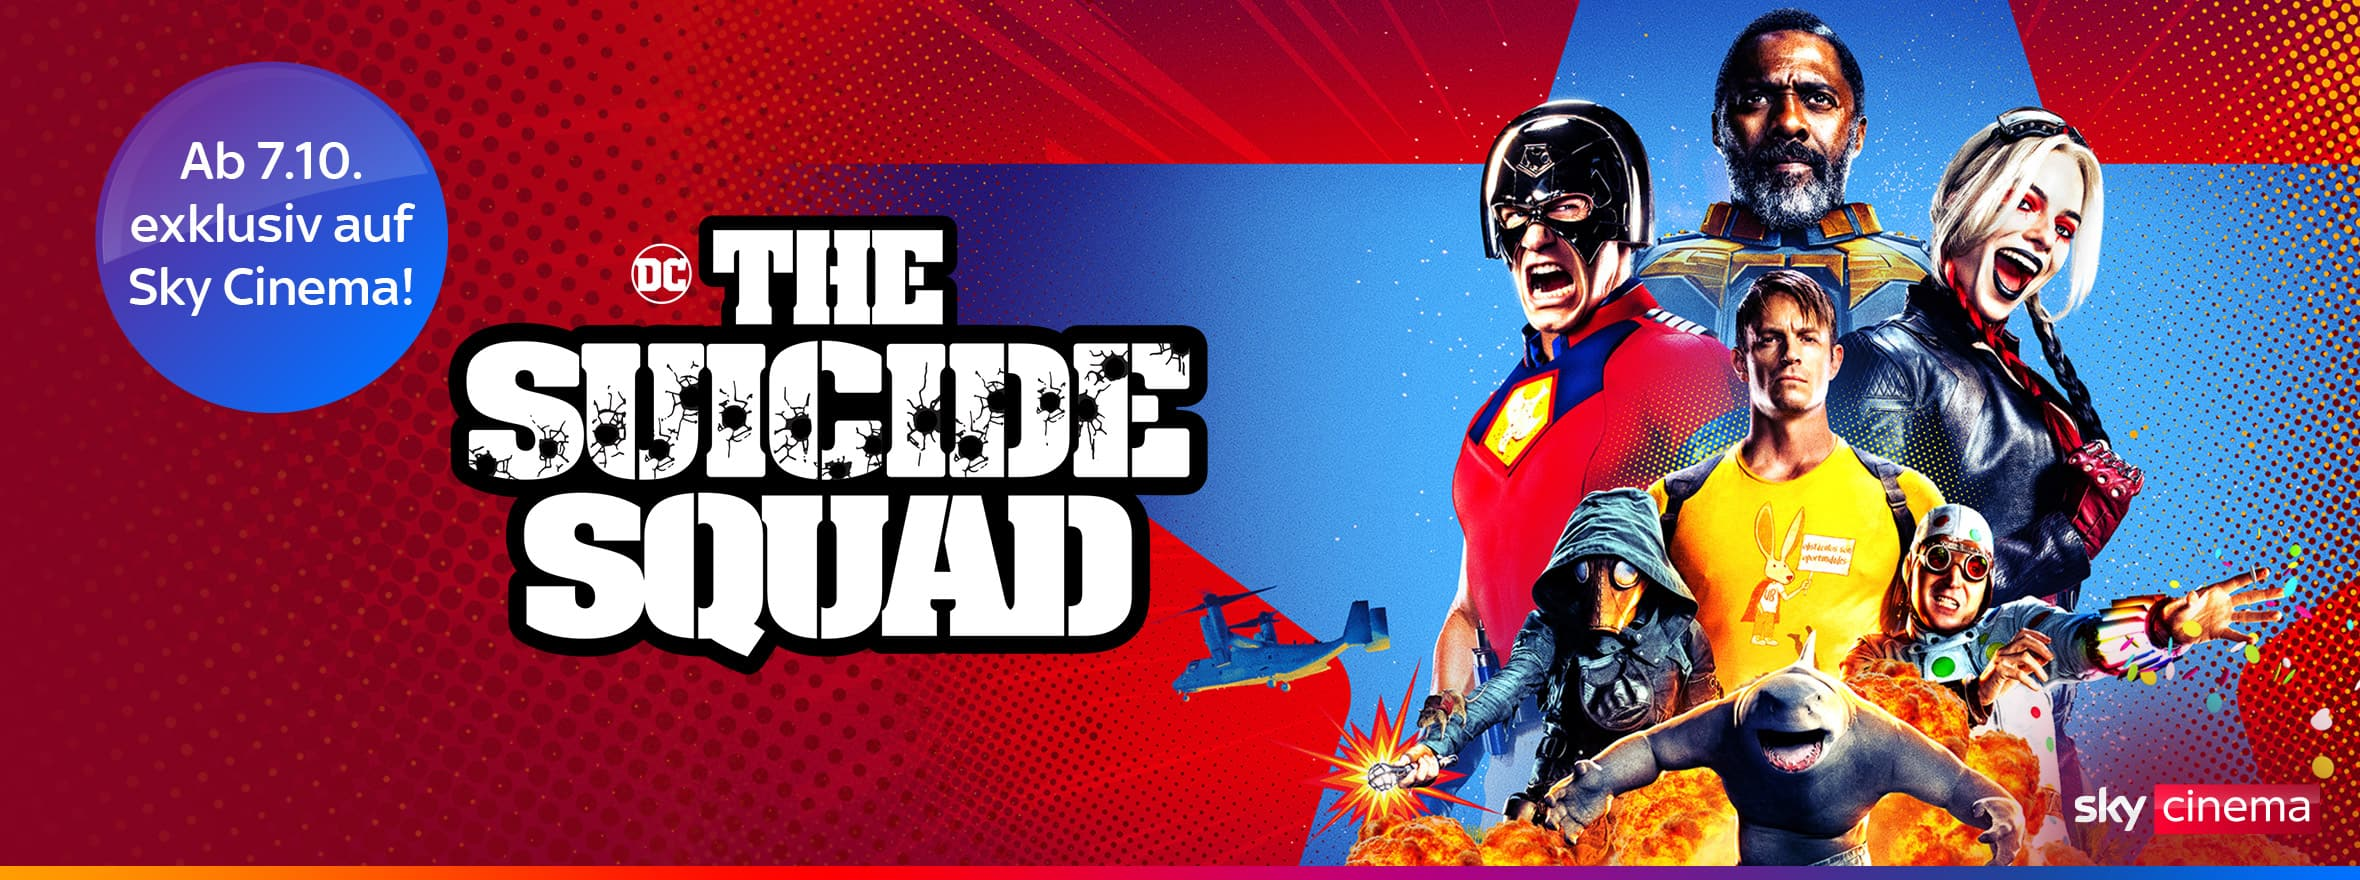 sky_21-09_the-suicide-squad_text_l_v1